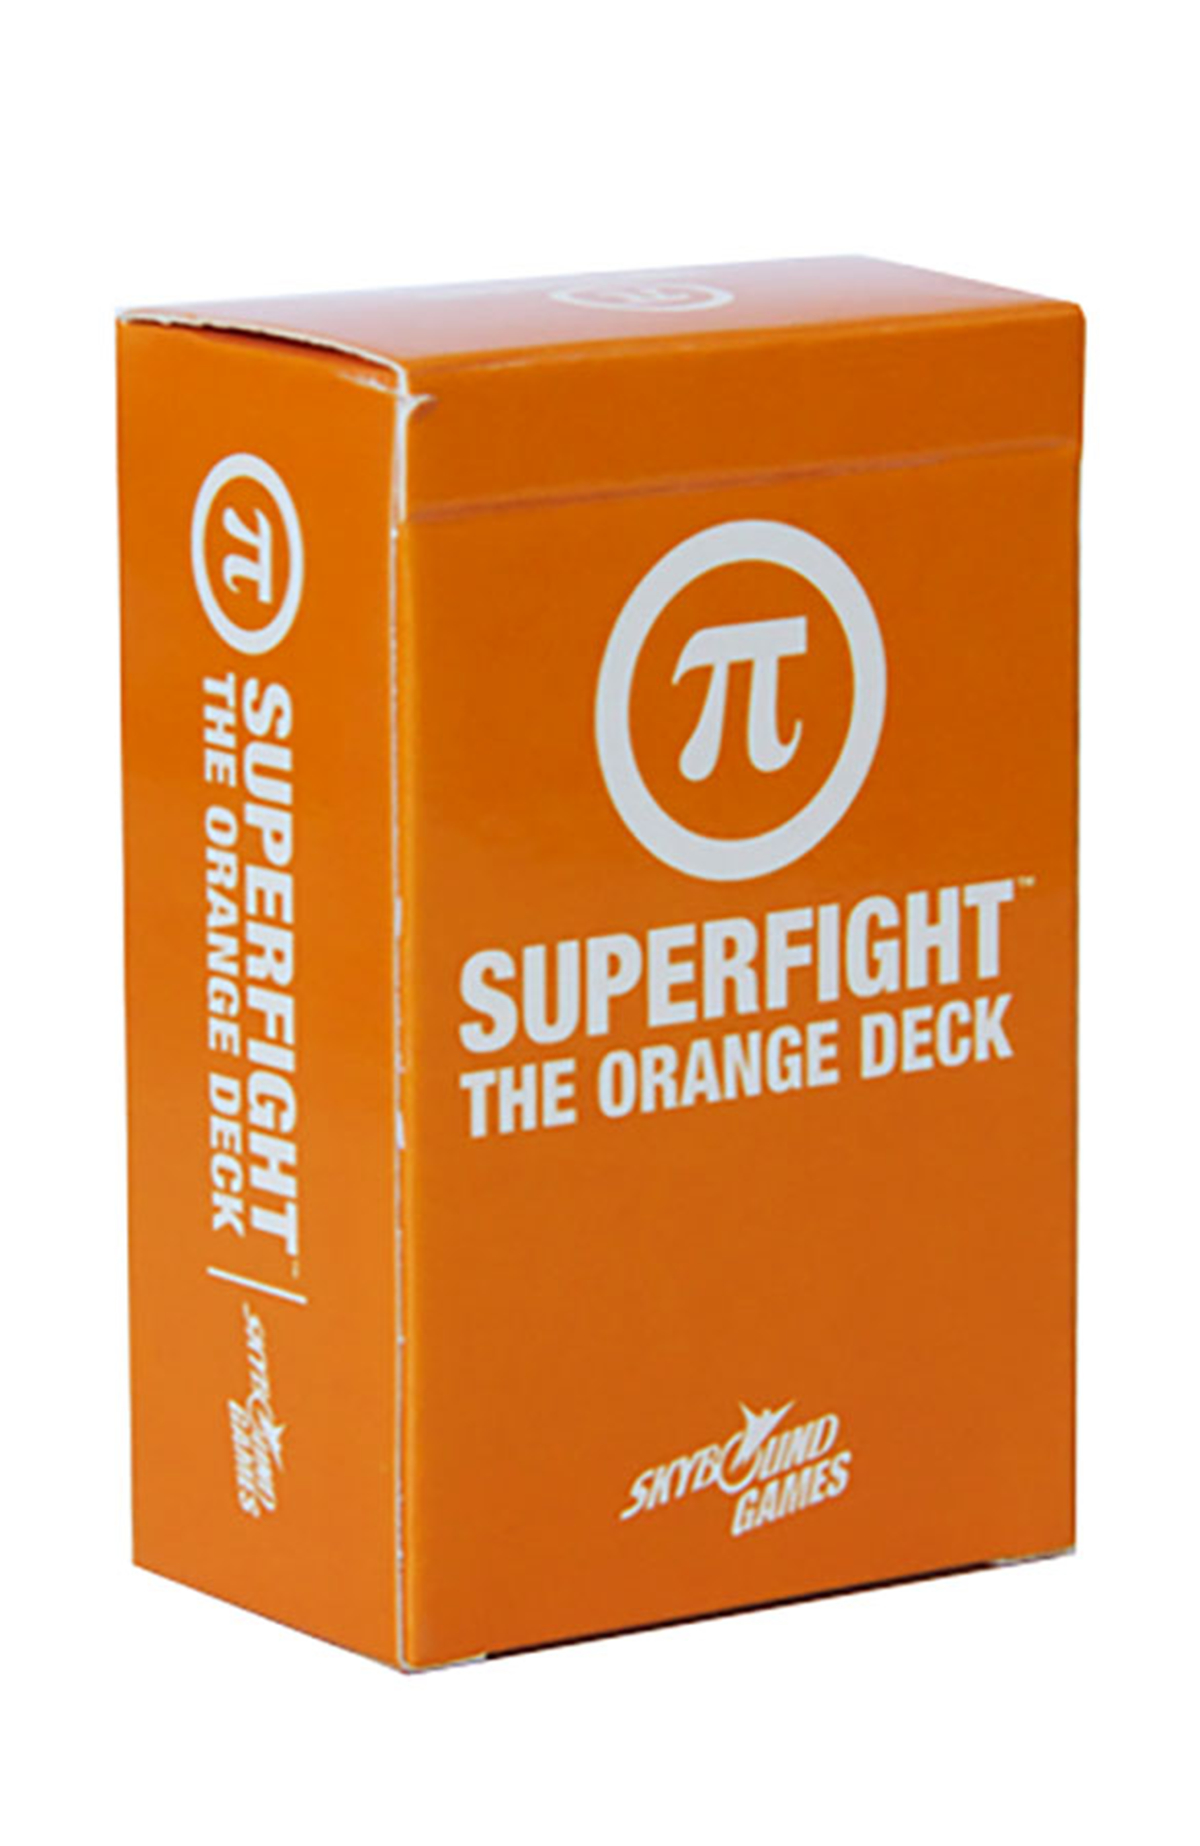 SUPERFIGHT ORANGE DECK